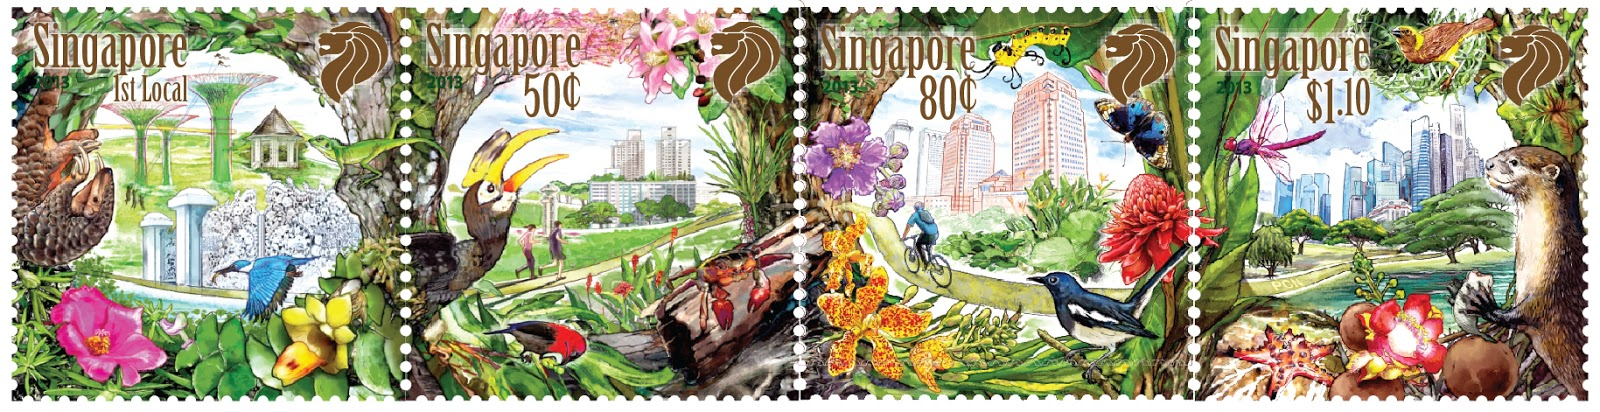 Singapore 2013 City in a Garden stamp issue